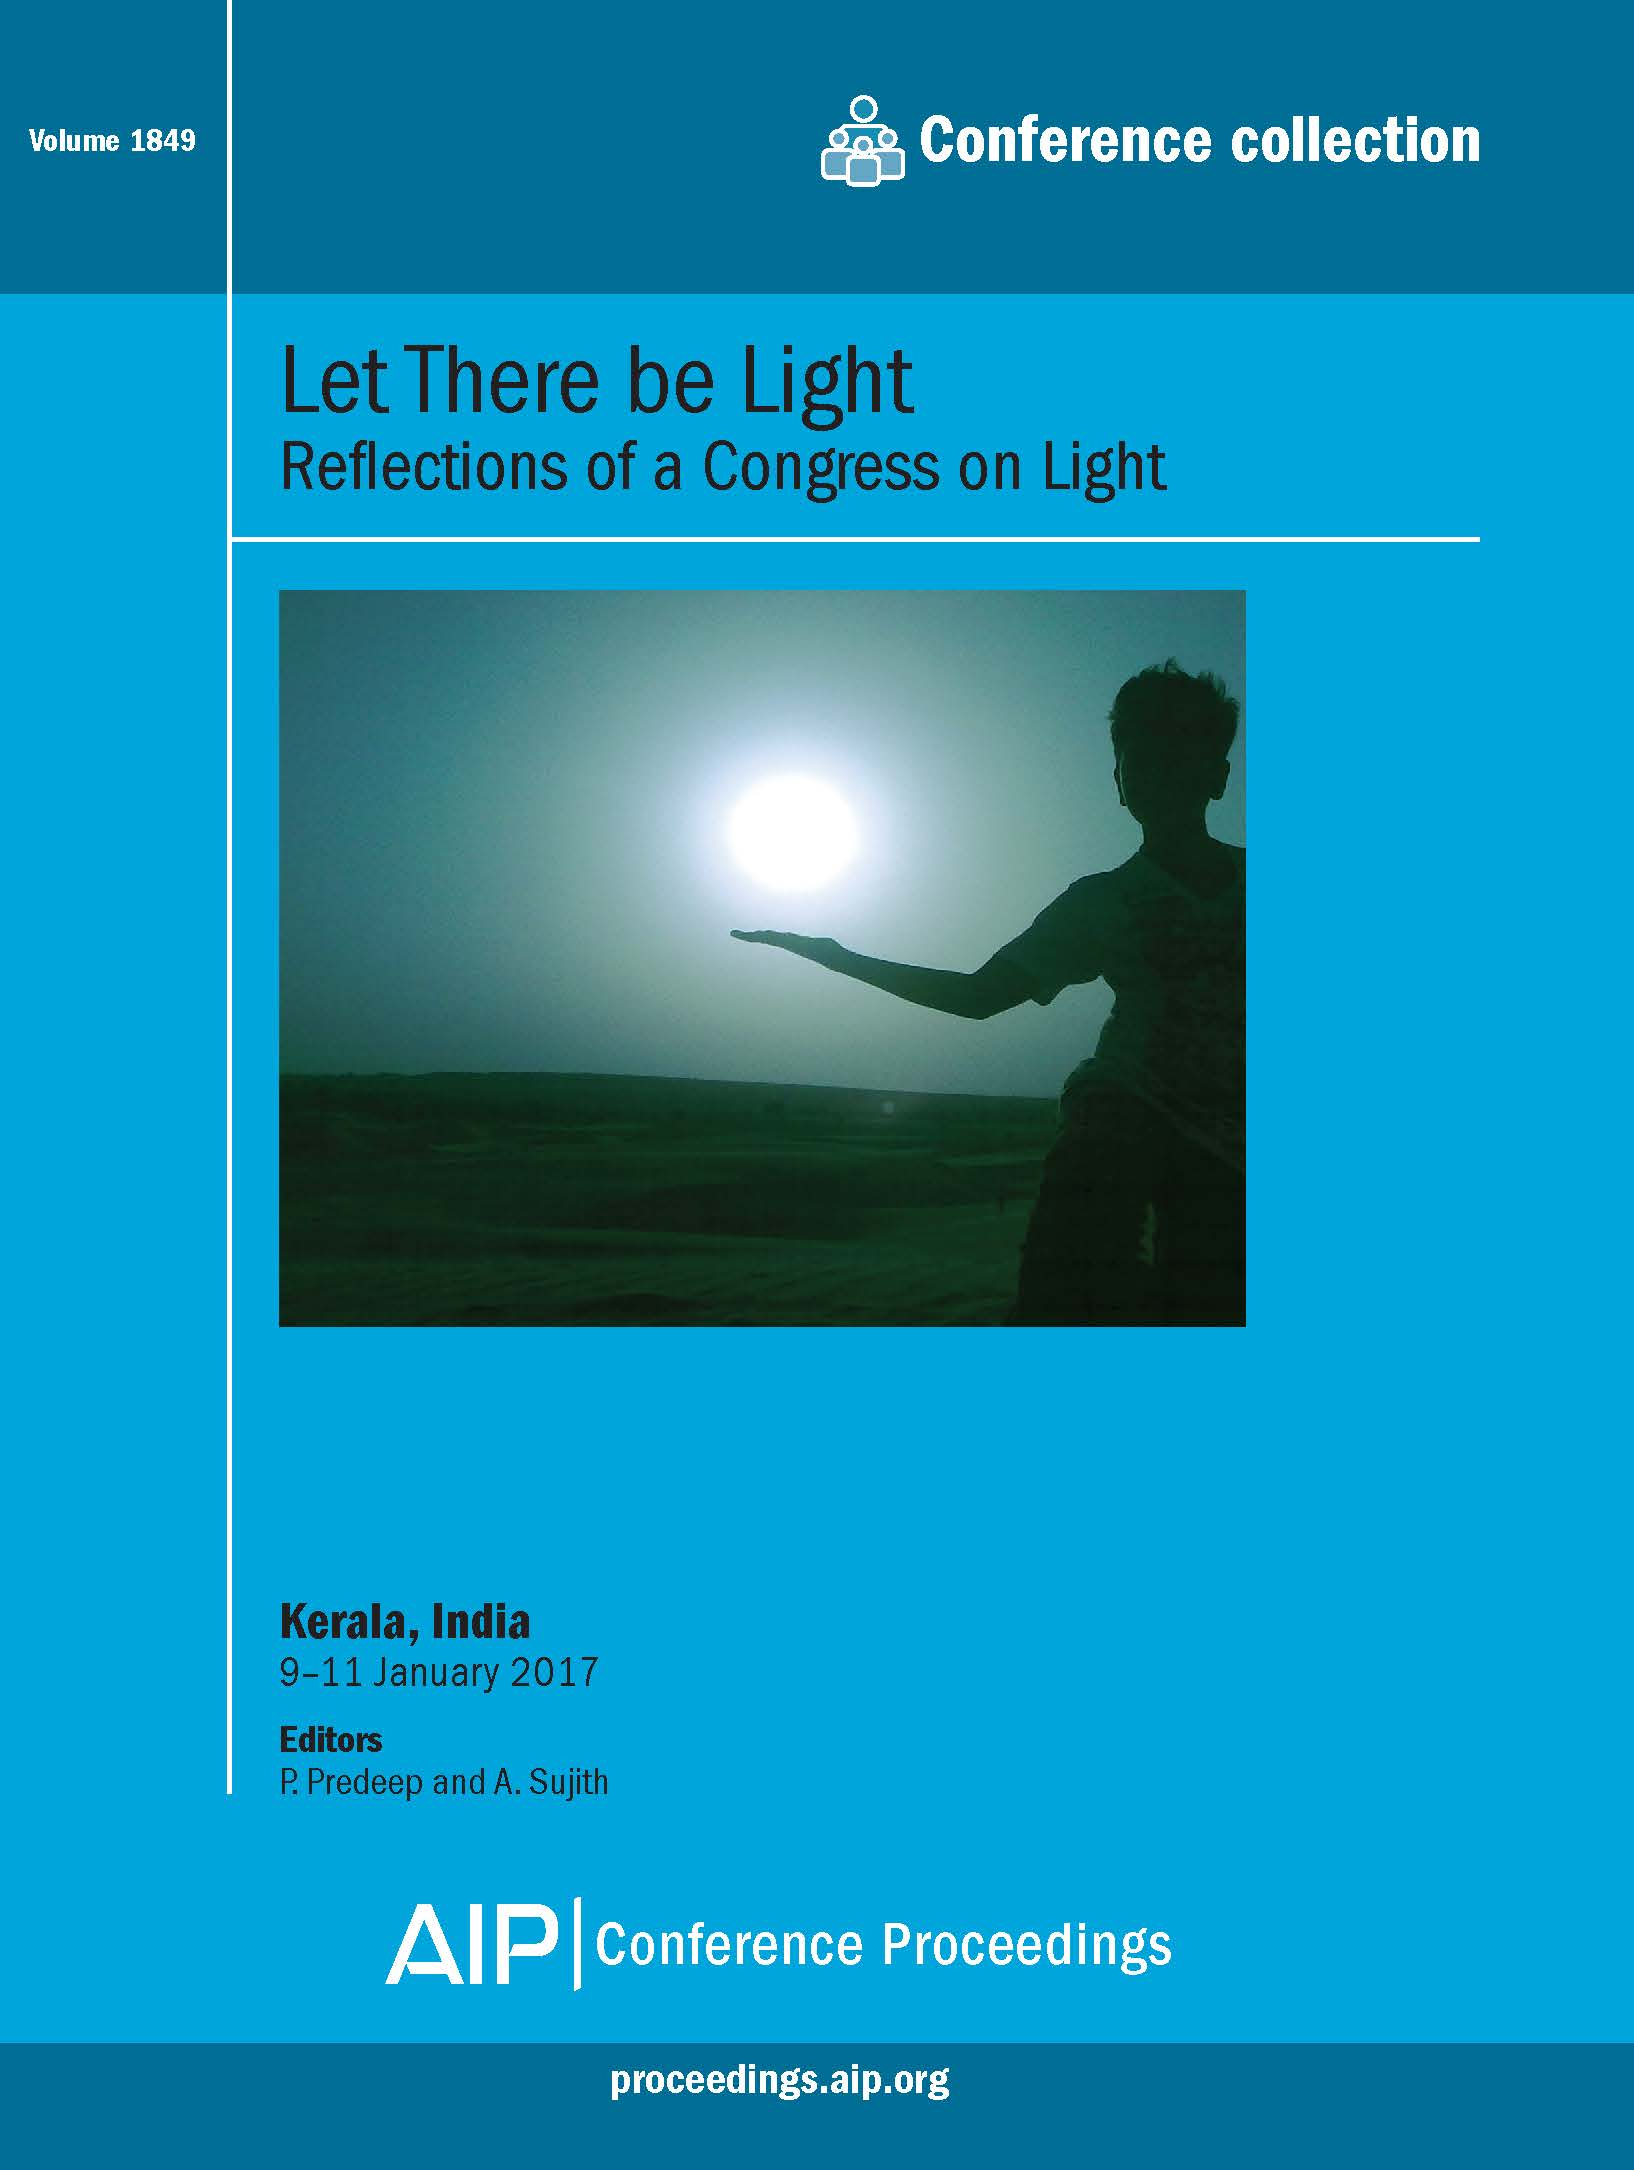 Volume 1849: Let There be Light: Reflections of a Congress on Light